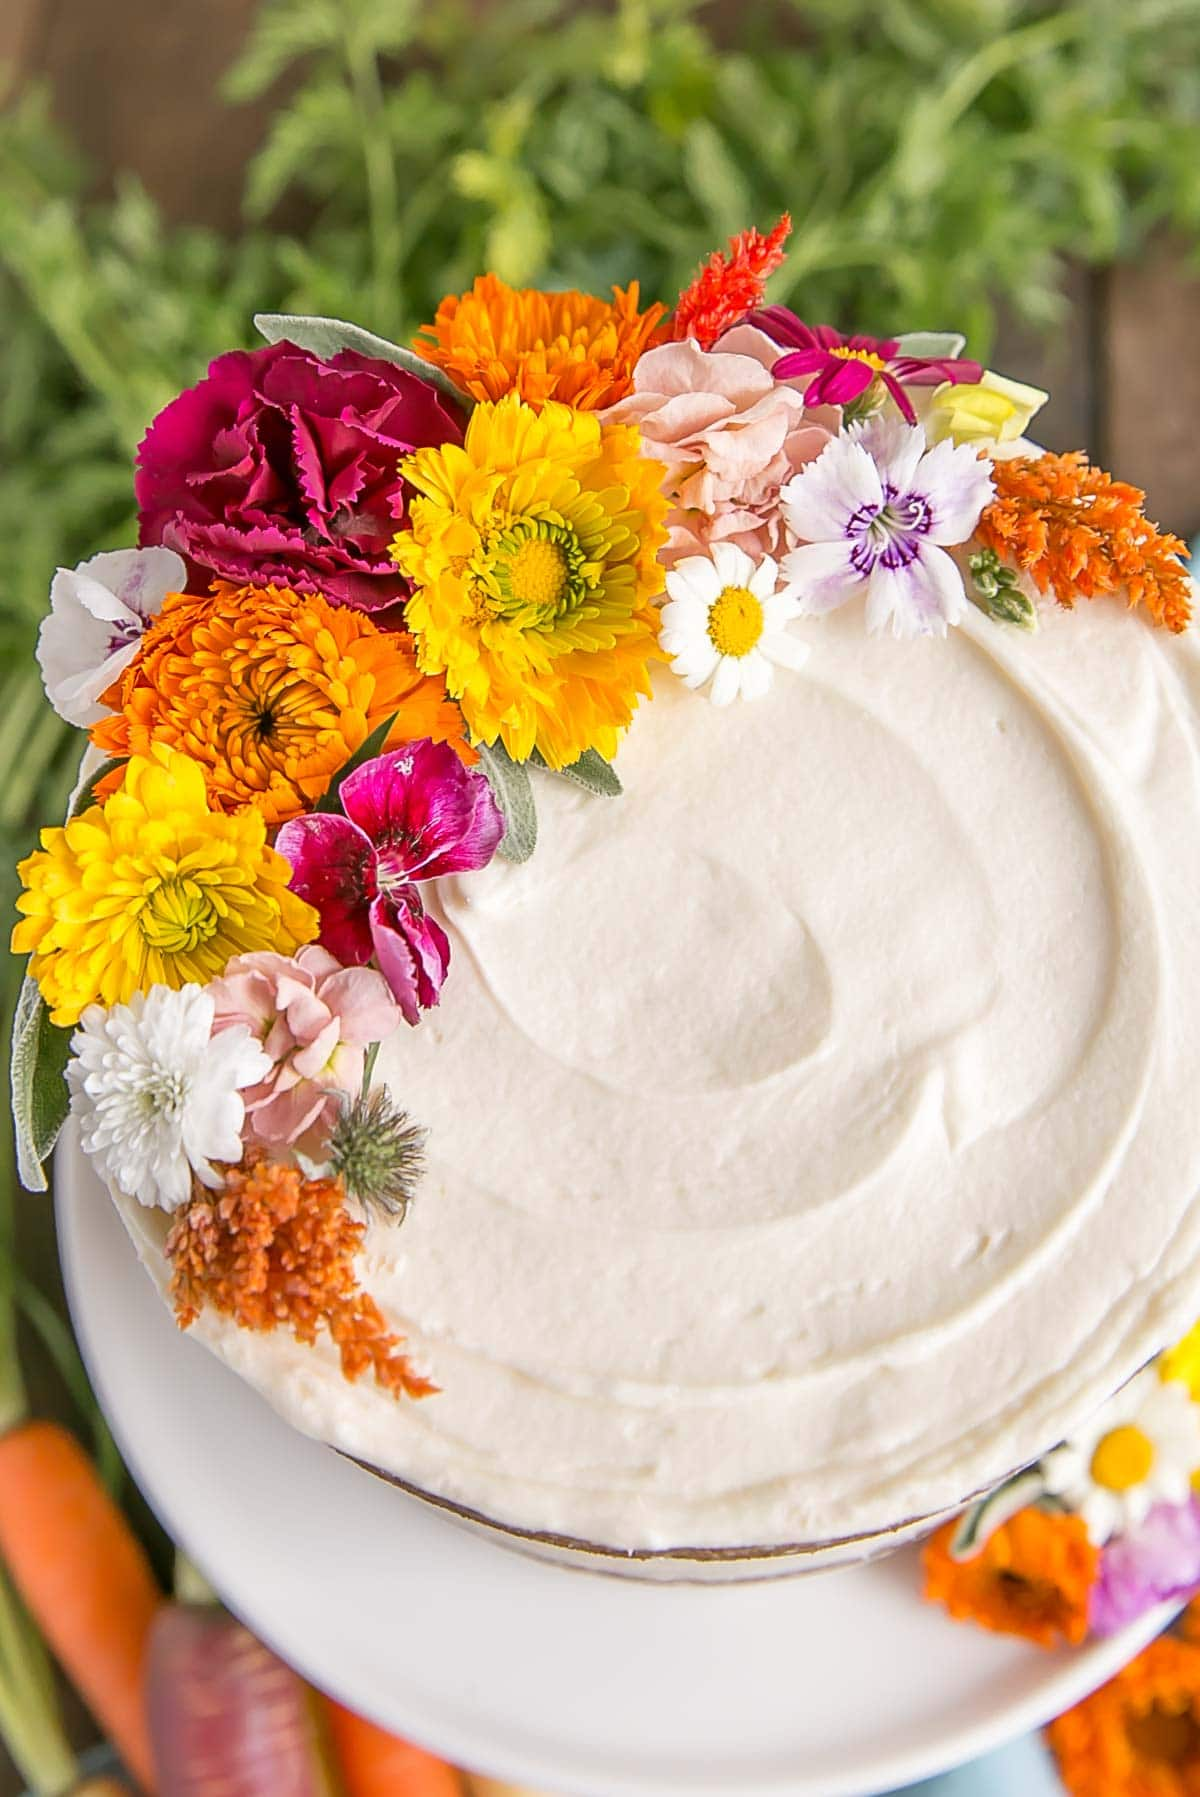 Close up of edible flowers on carrot cake with cream cheese frosting.